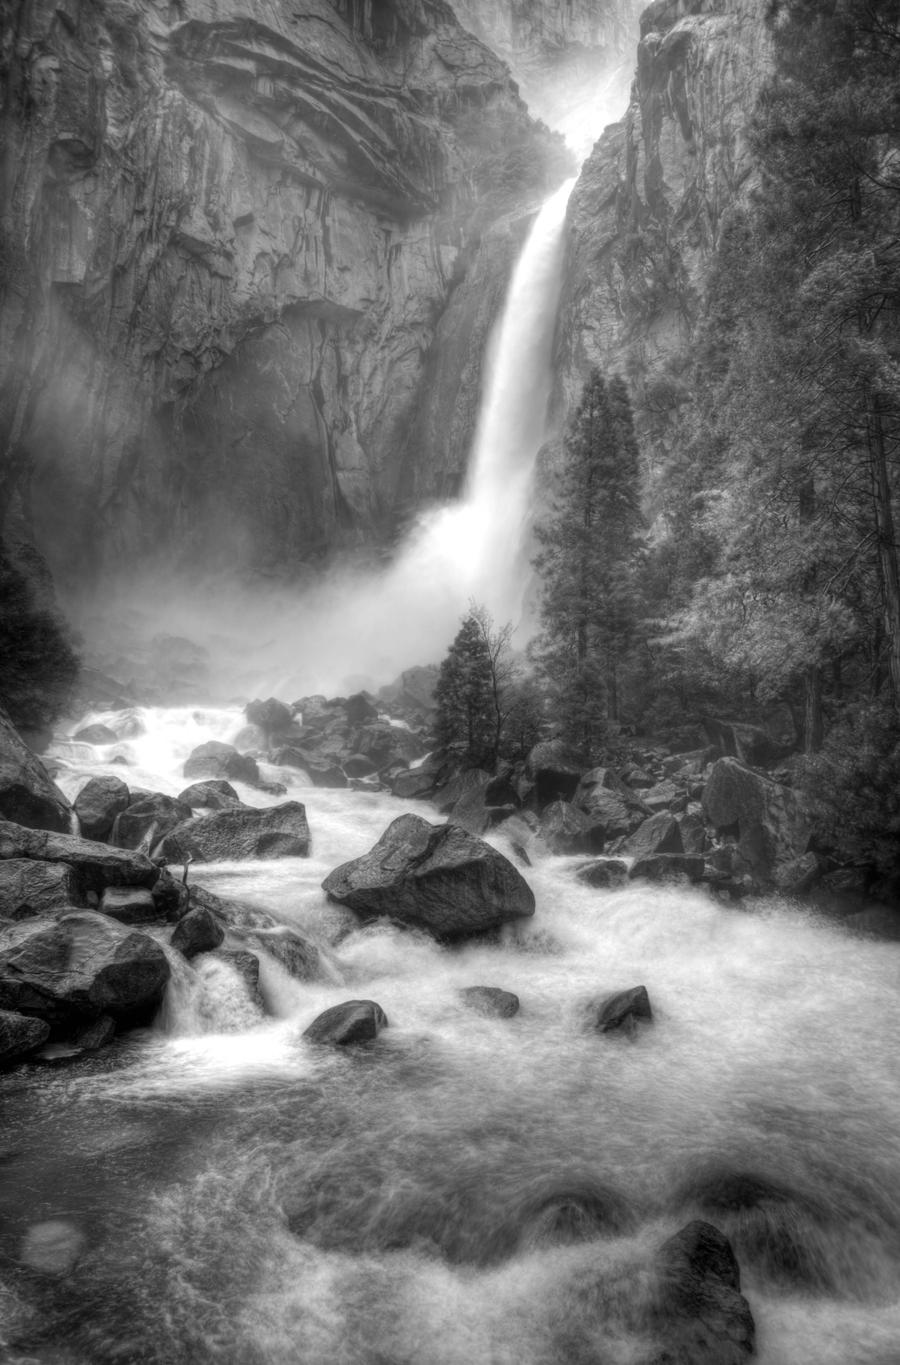 Lower Yosemite Falls by Audisportracer